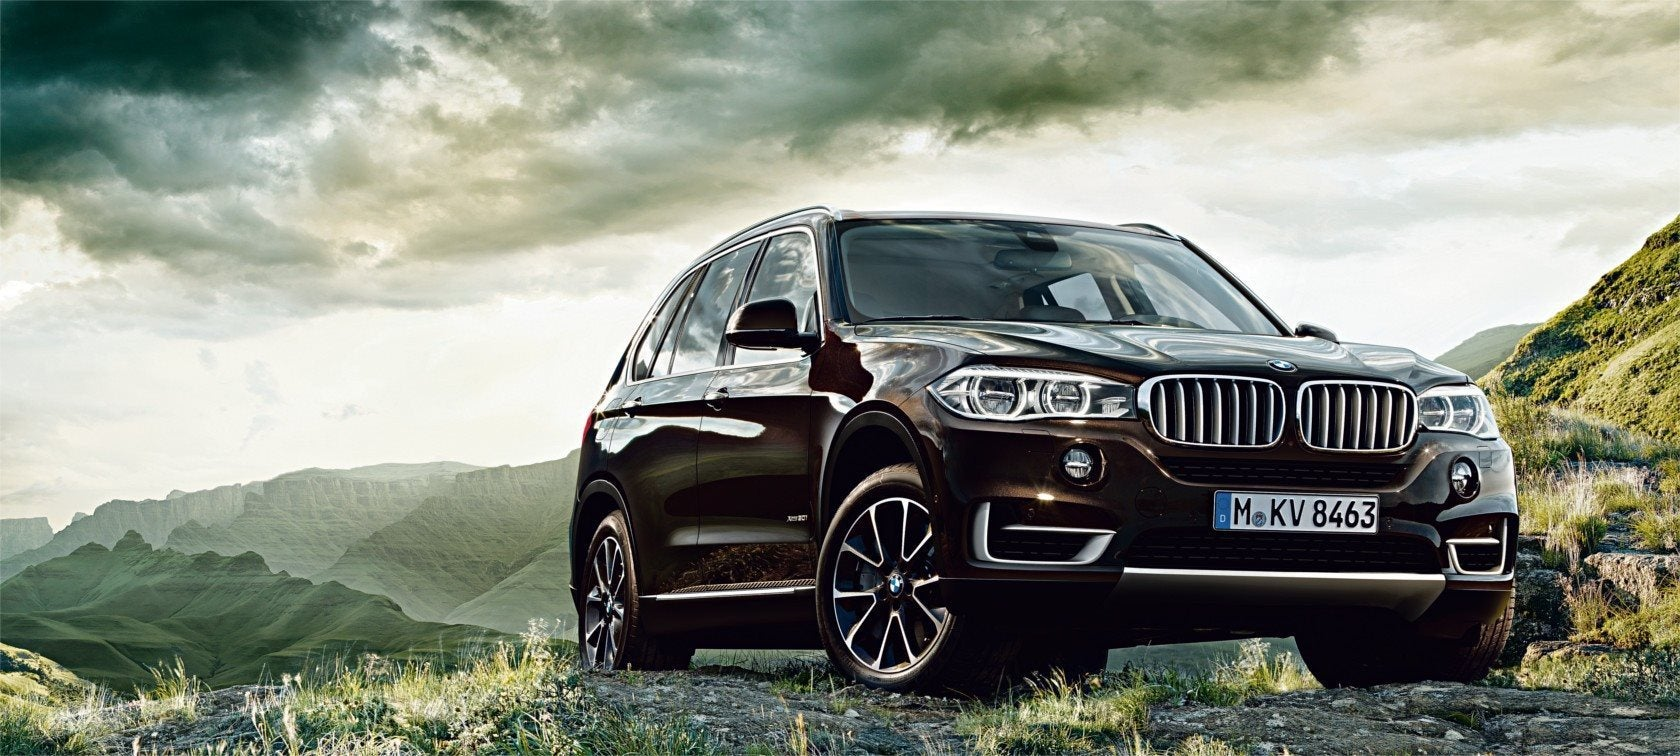 X5 Special At Bmw Of Newton Nj